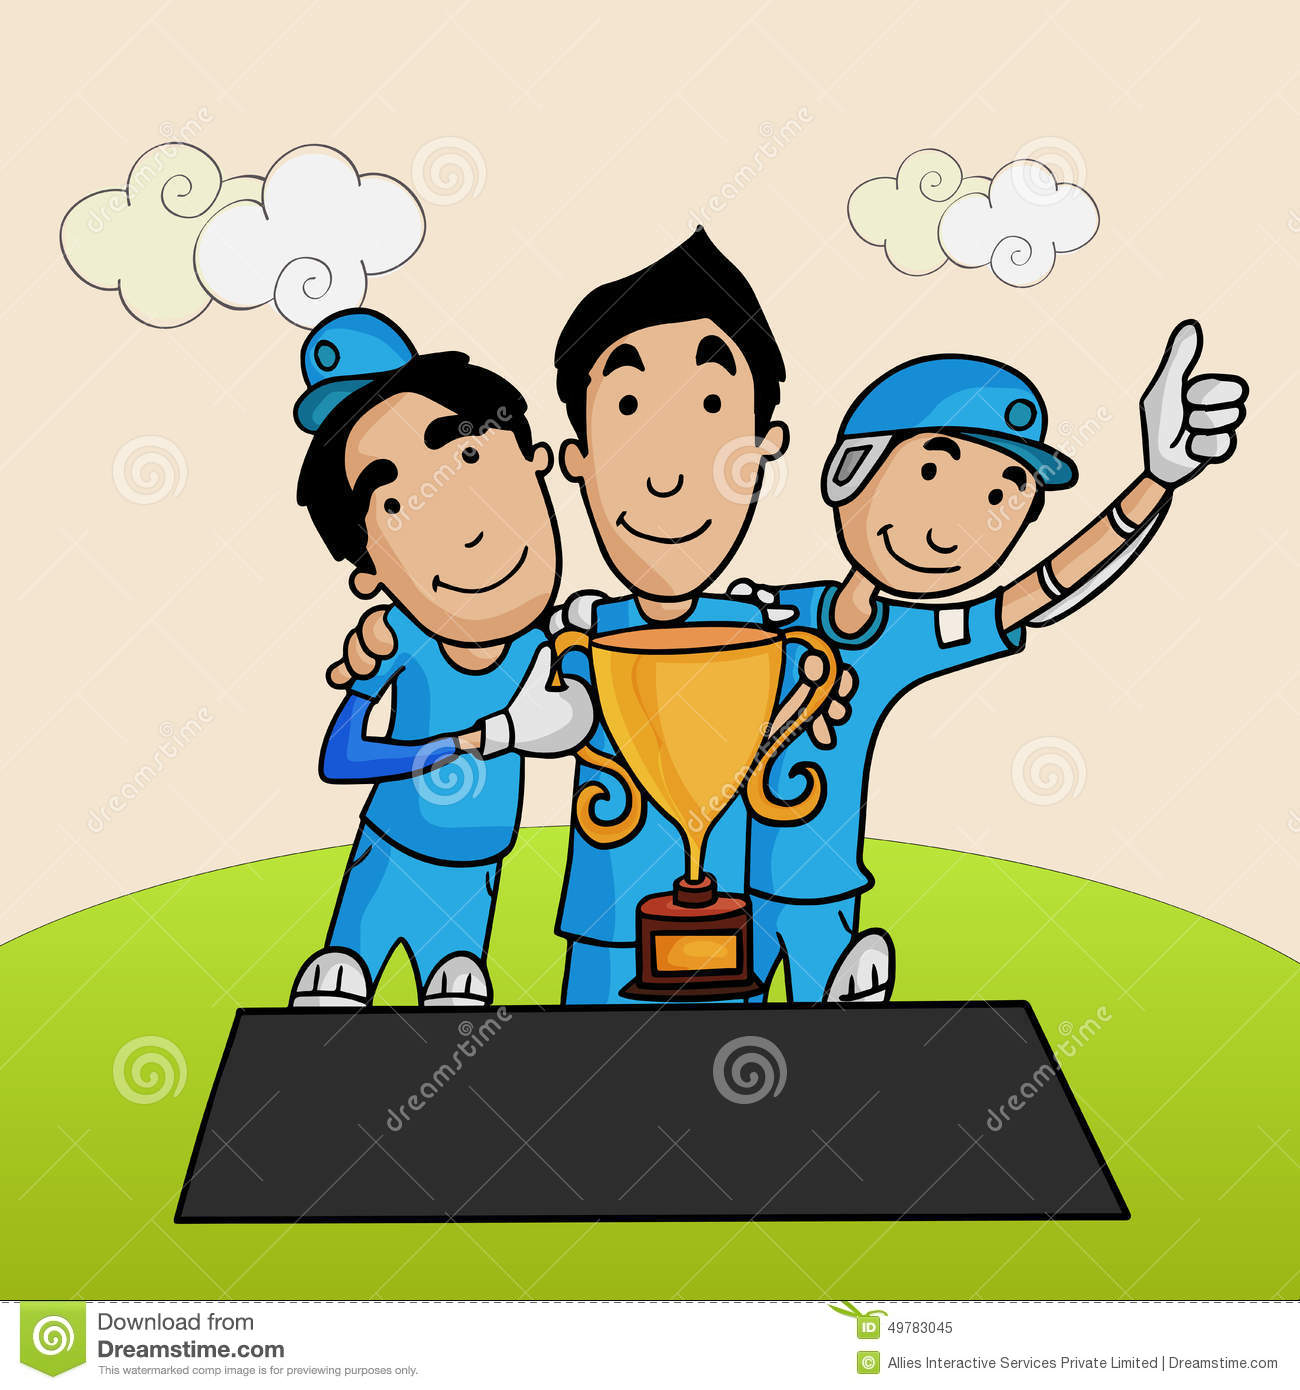 Cricket Players With Winning Trophy. Stock Illustration.